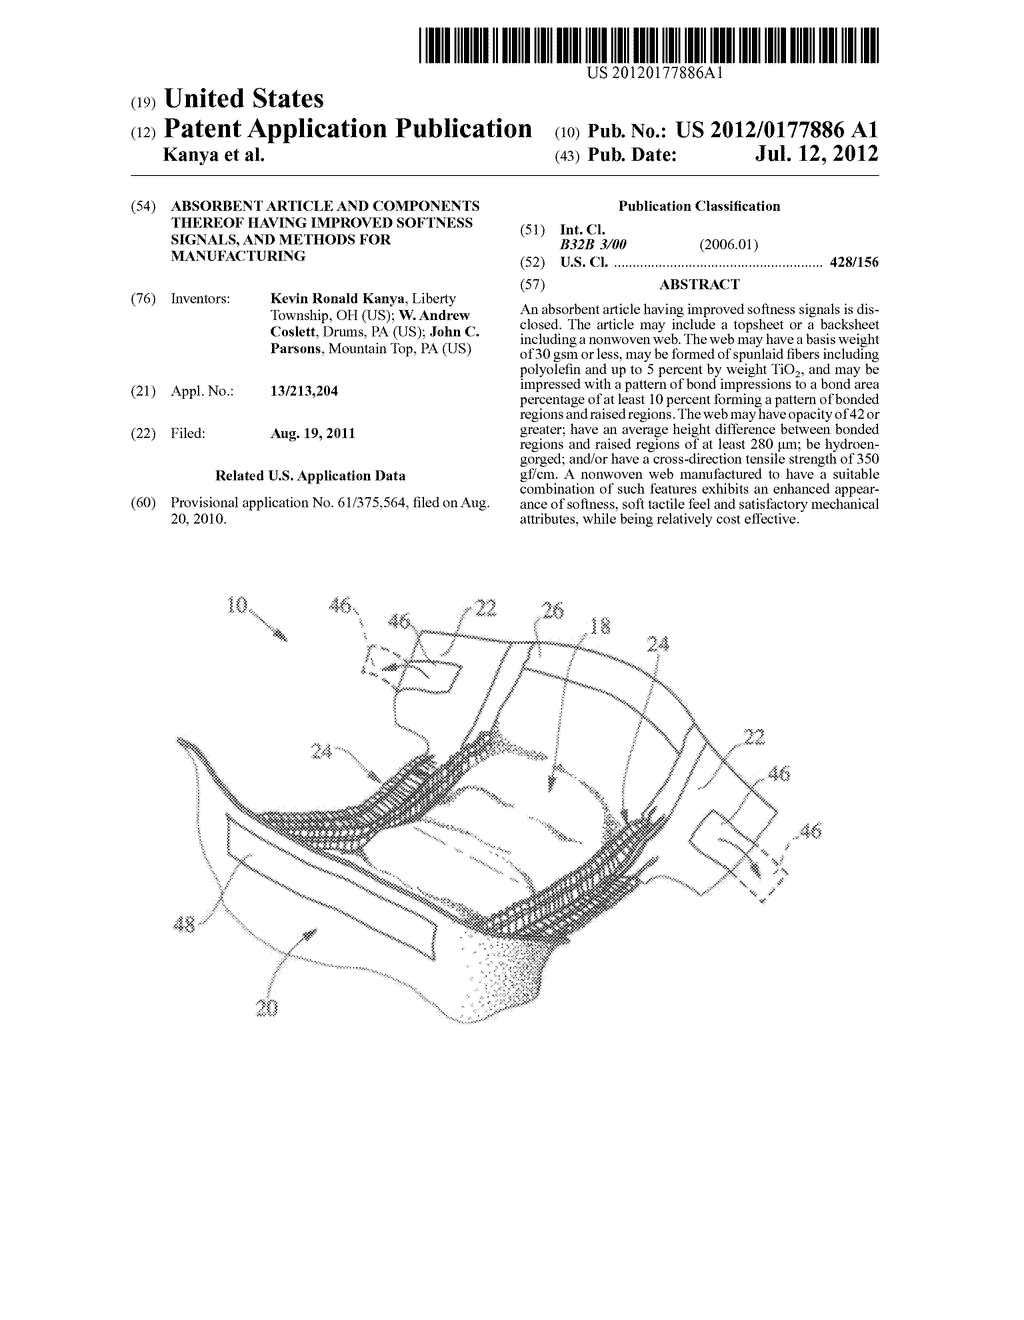 Absorbent Article and Components Thereof Having Improved Softness Signals,     and Methods for Manufacturing - diagram, schematic, and image 01